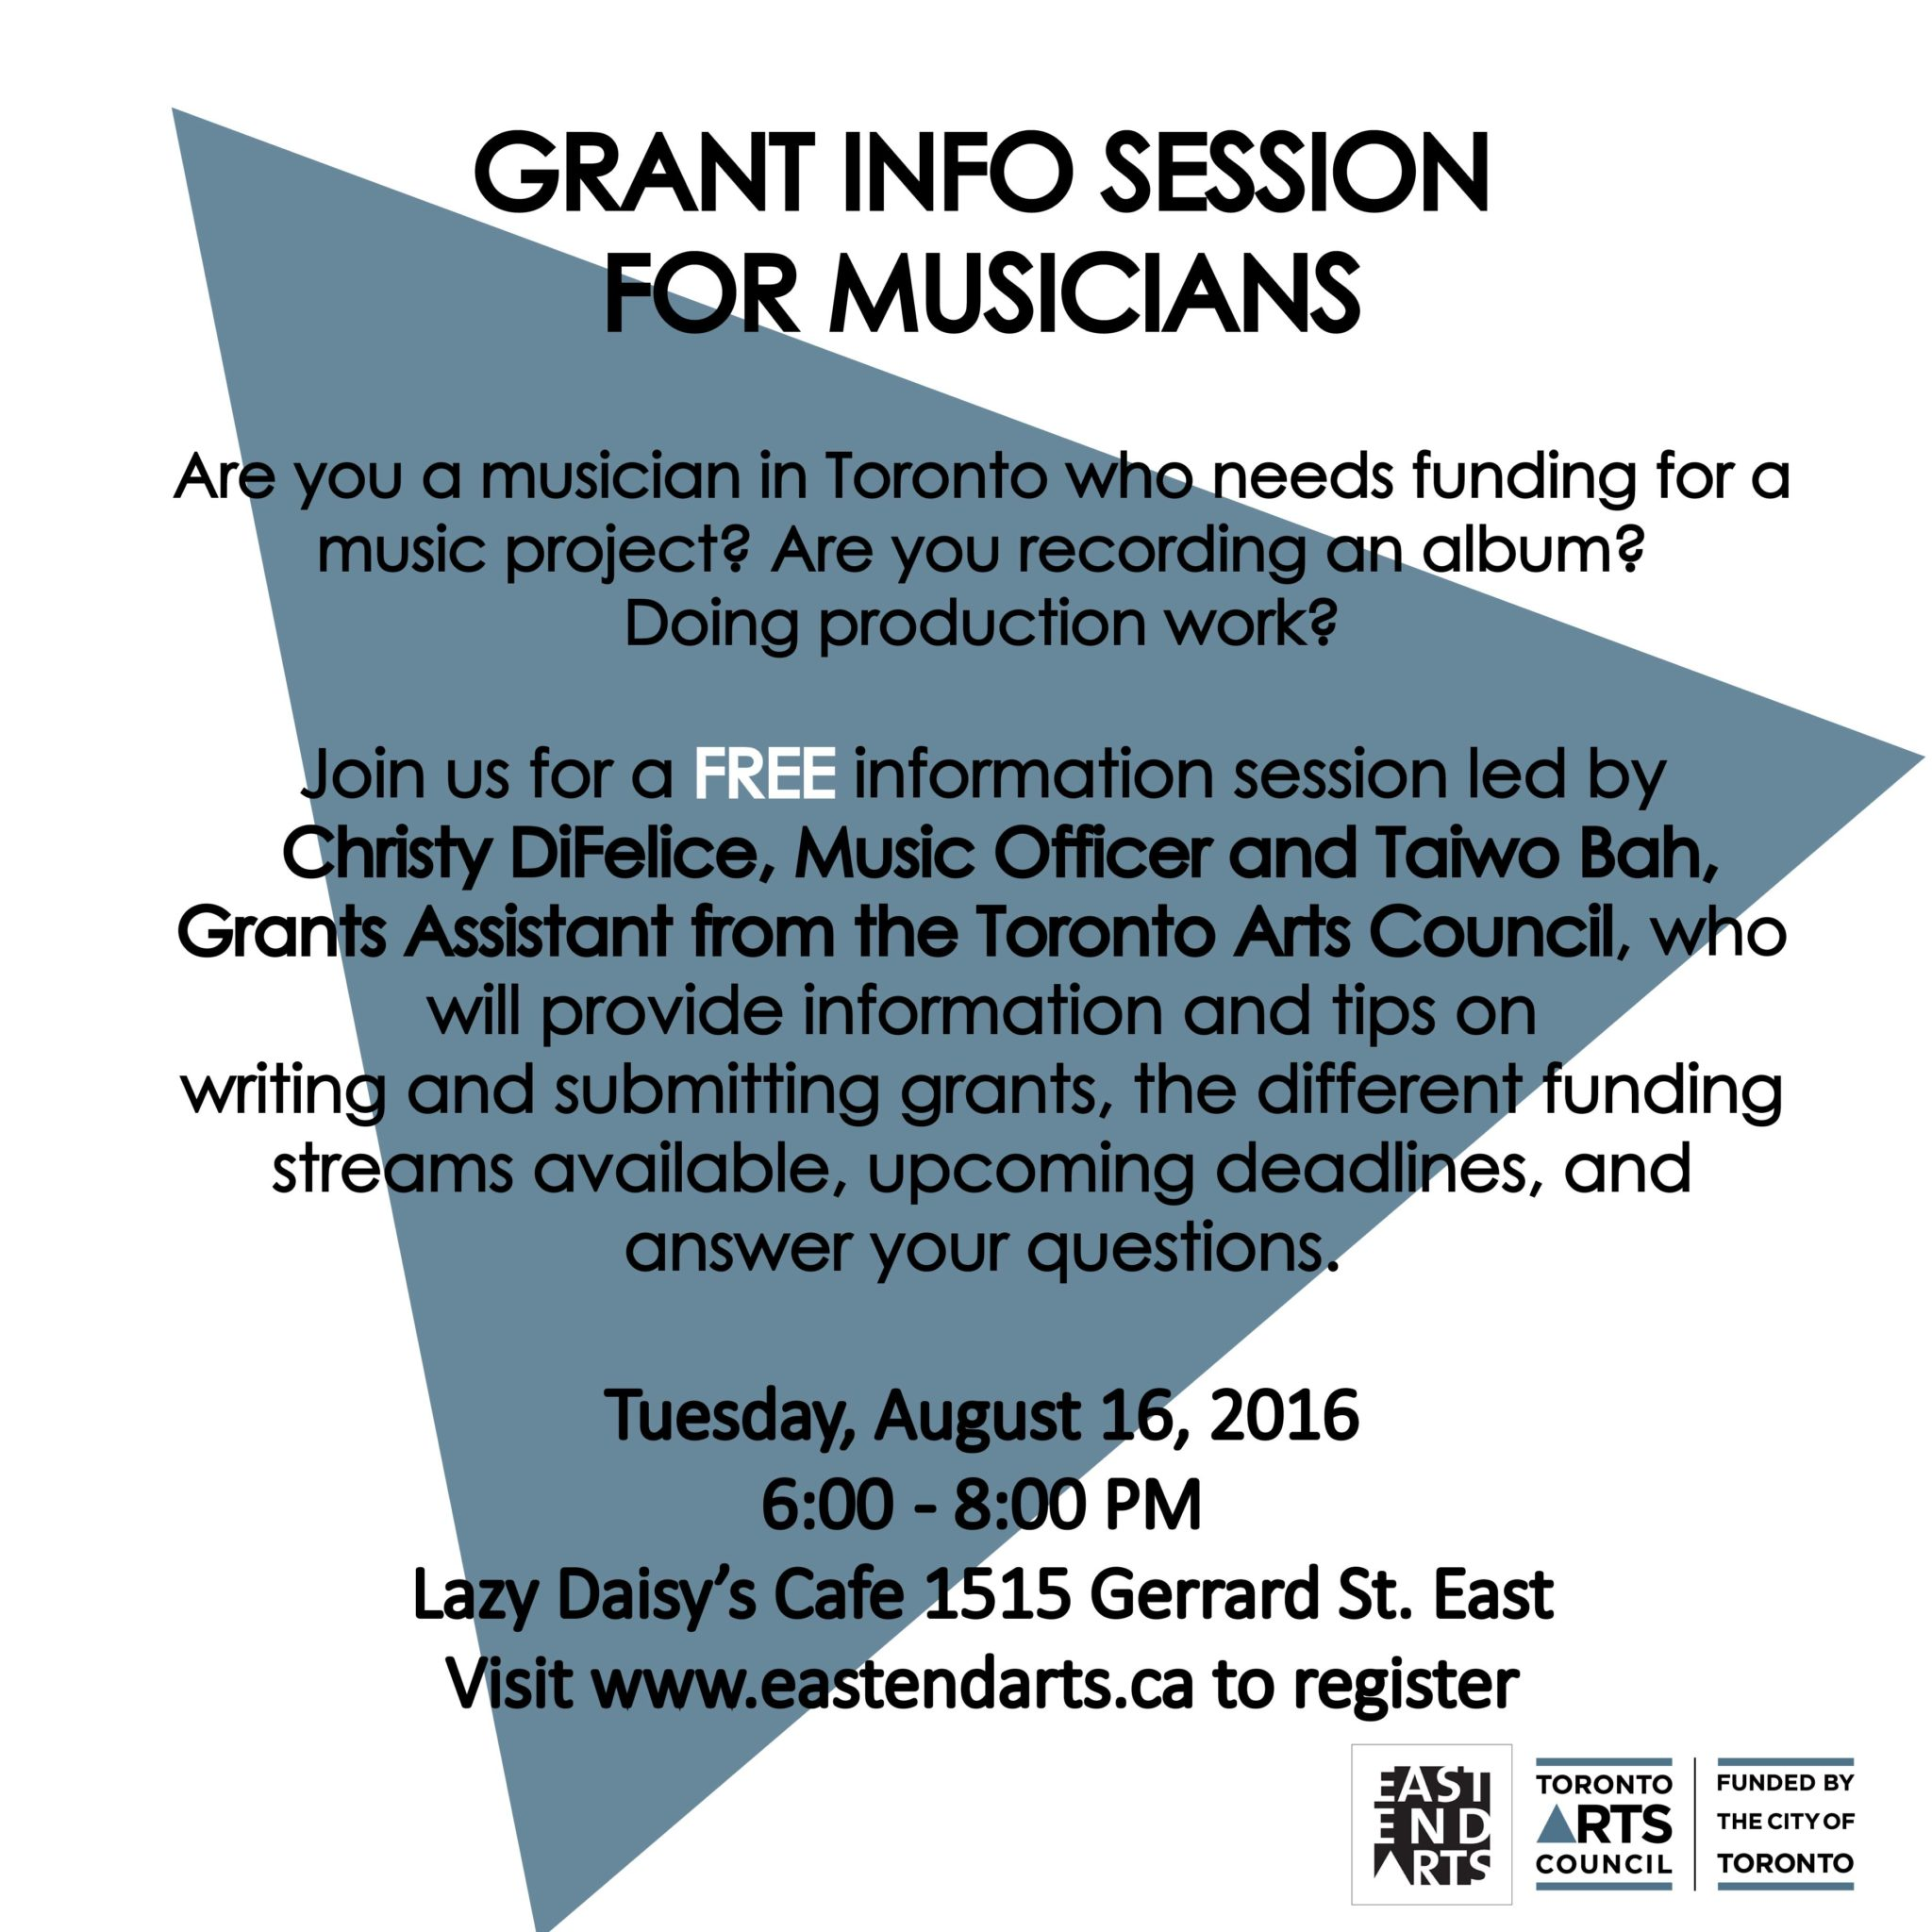 Grant Info Session for Musicians